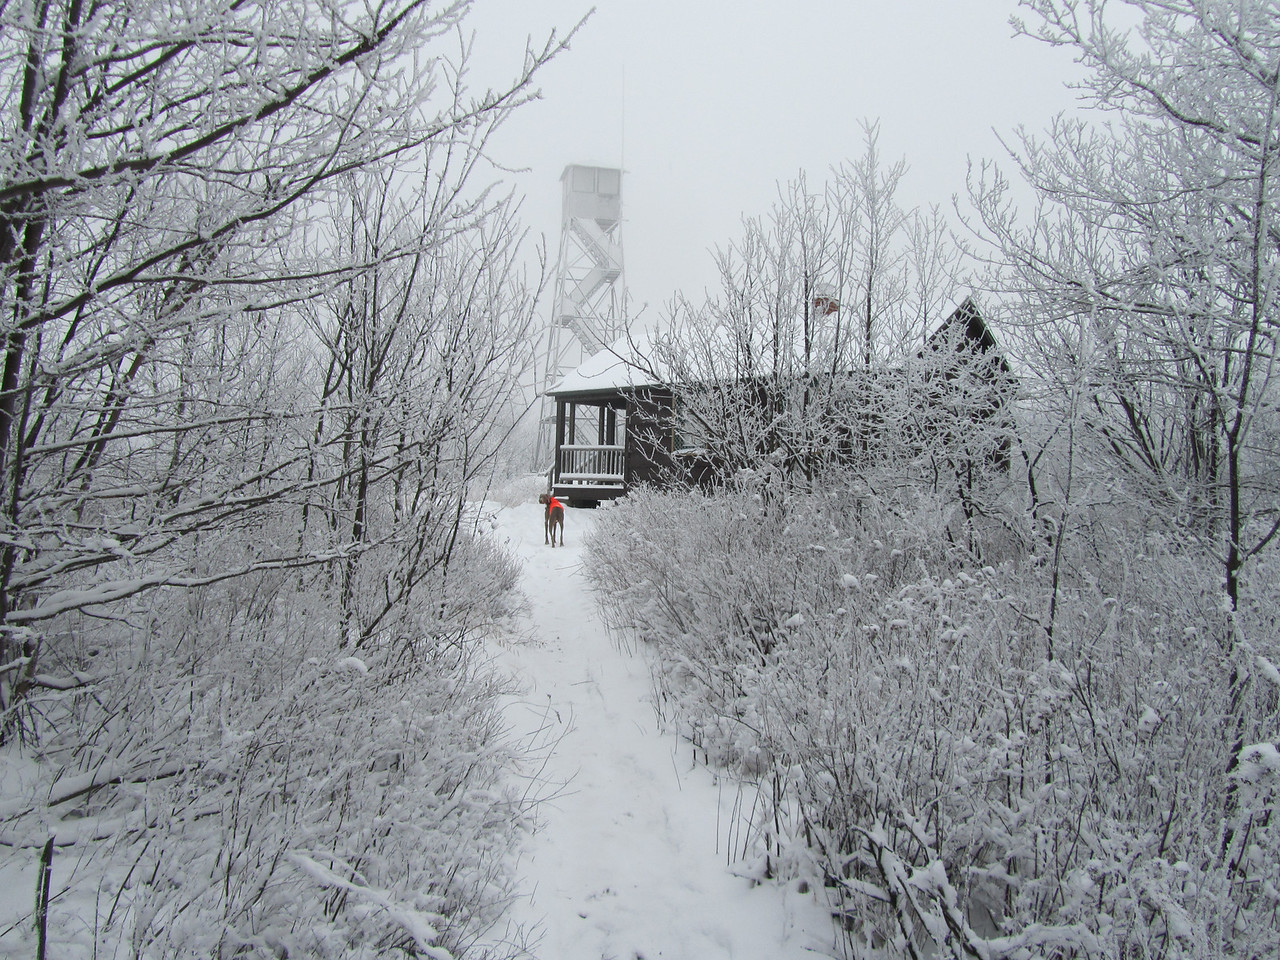 Another camo tower. Nice ranger cabin in great shape. I was tempted to move in and claim squatters rights.